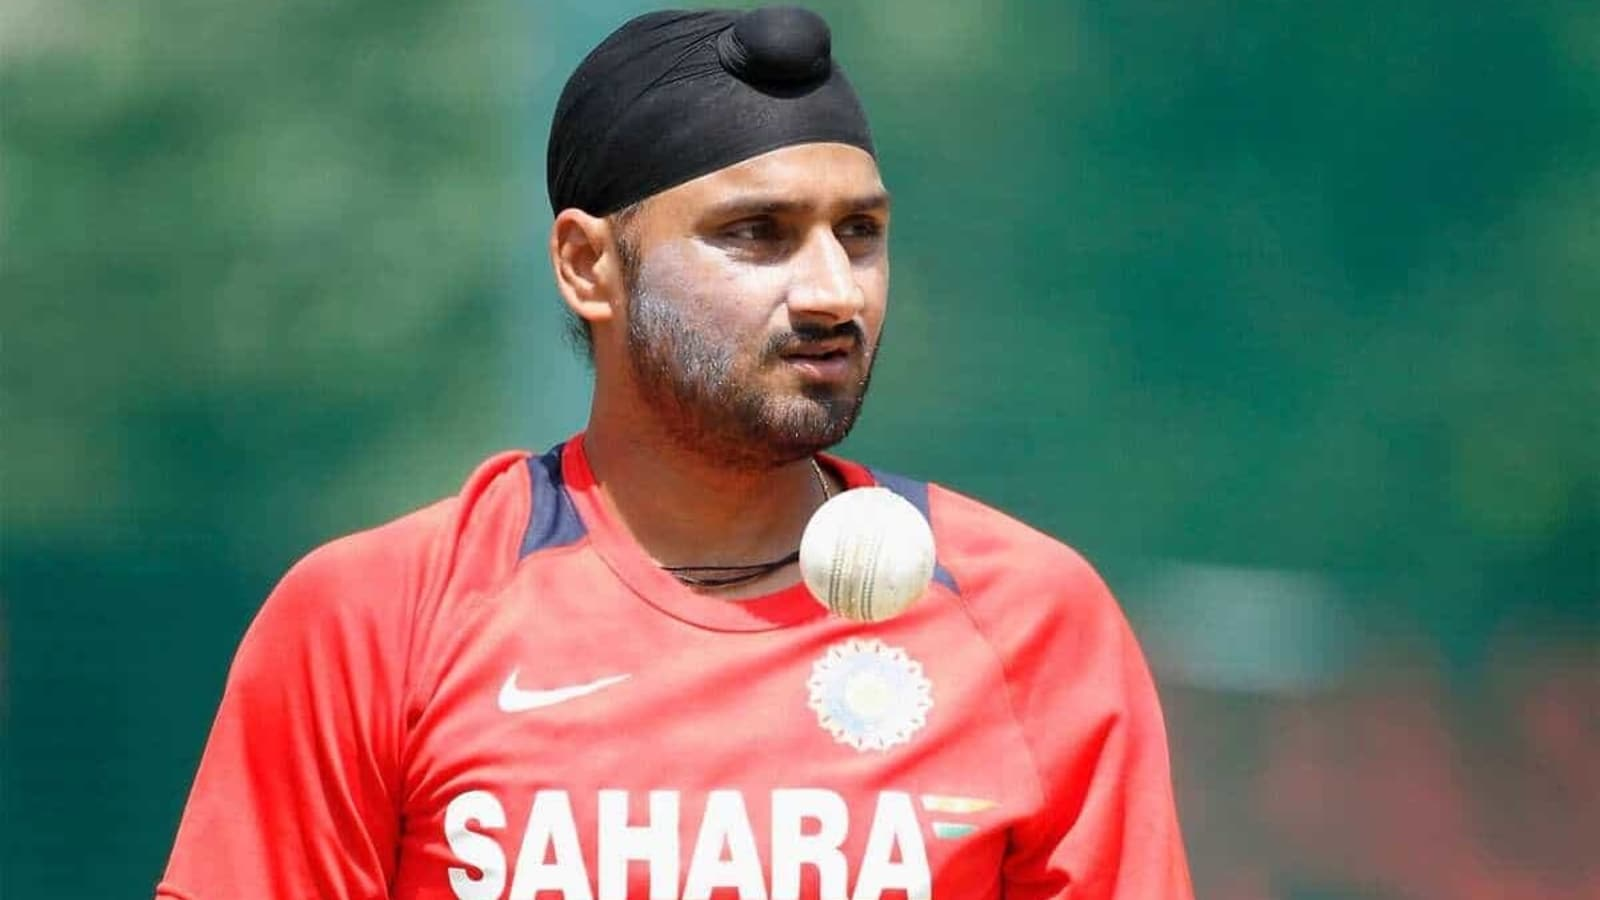 'He's still better than most of the youngsters': Harbhajan names India's 2nd choice wicketkeeper after Rishabh Pant - Hindustan Times